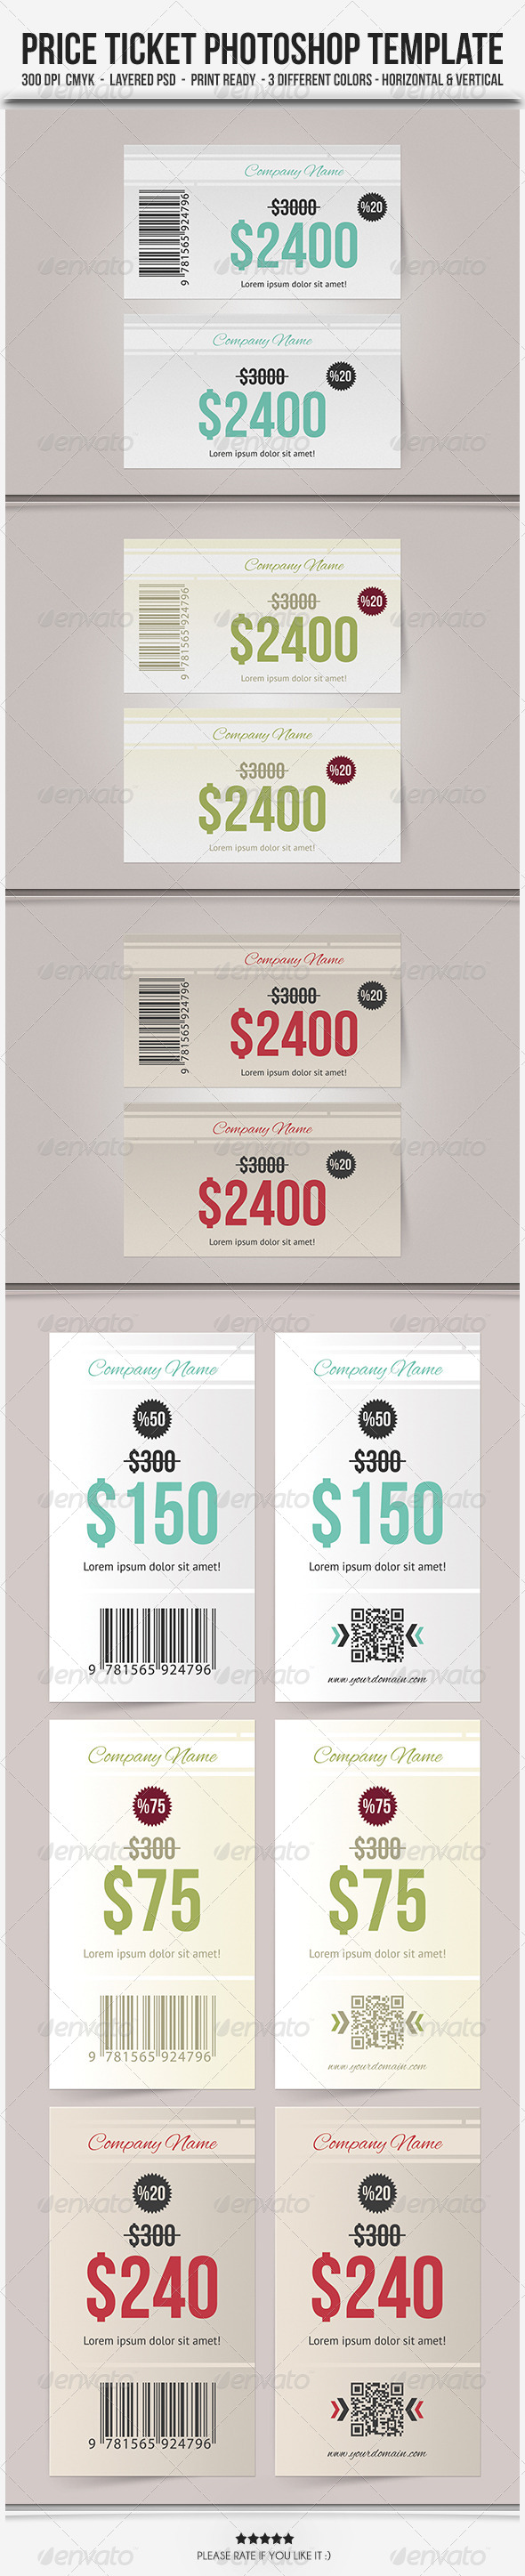 Price Ticket - Photoshop Template - Cards & Invites Print Templates